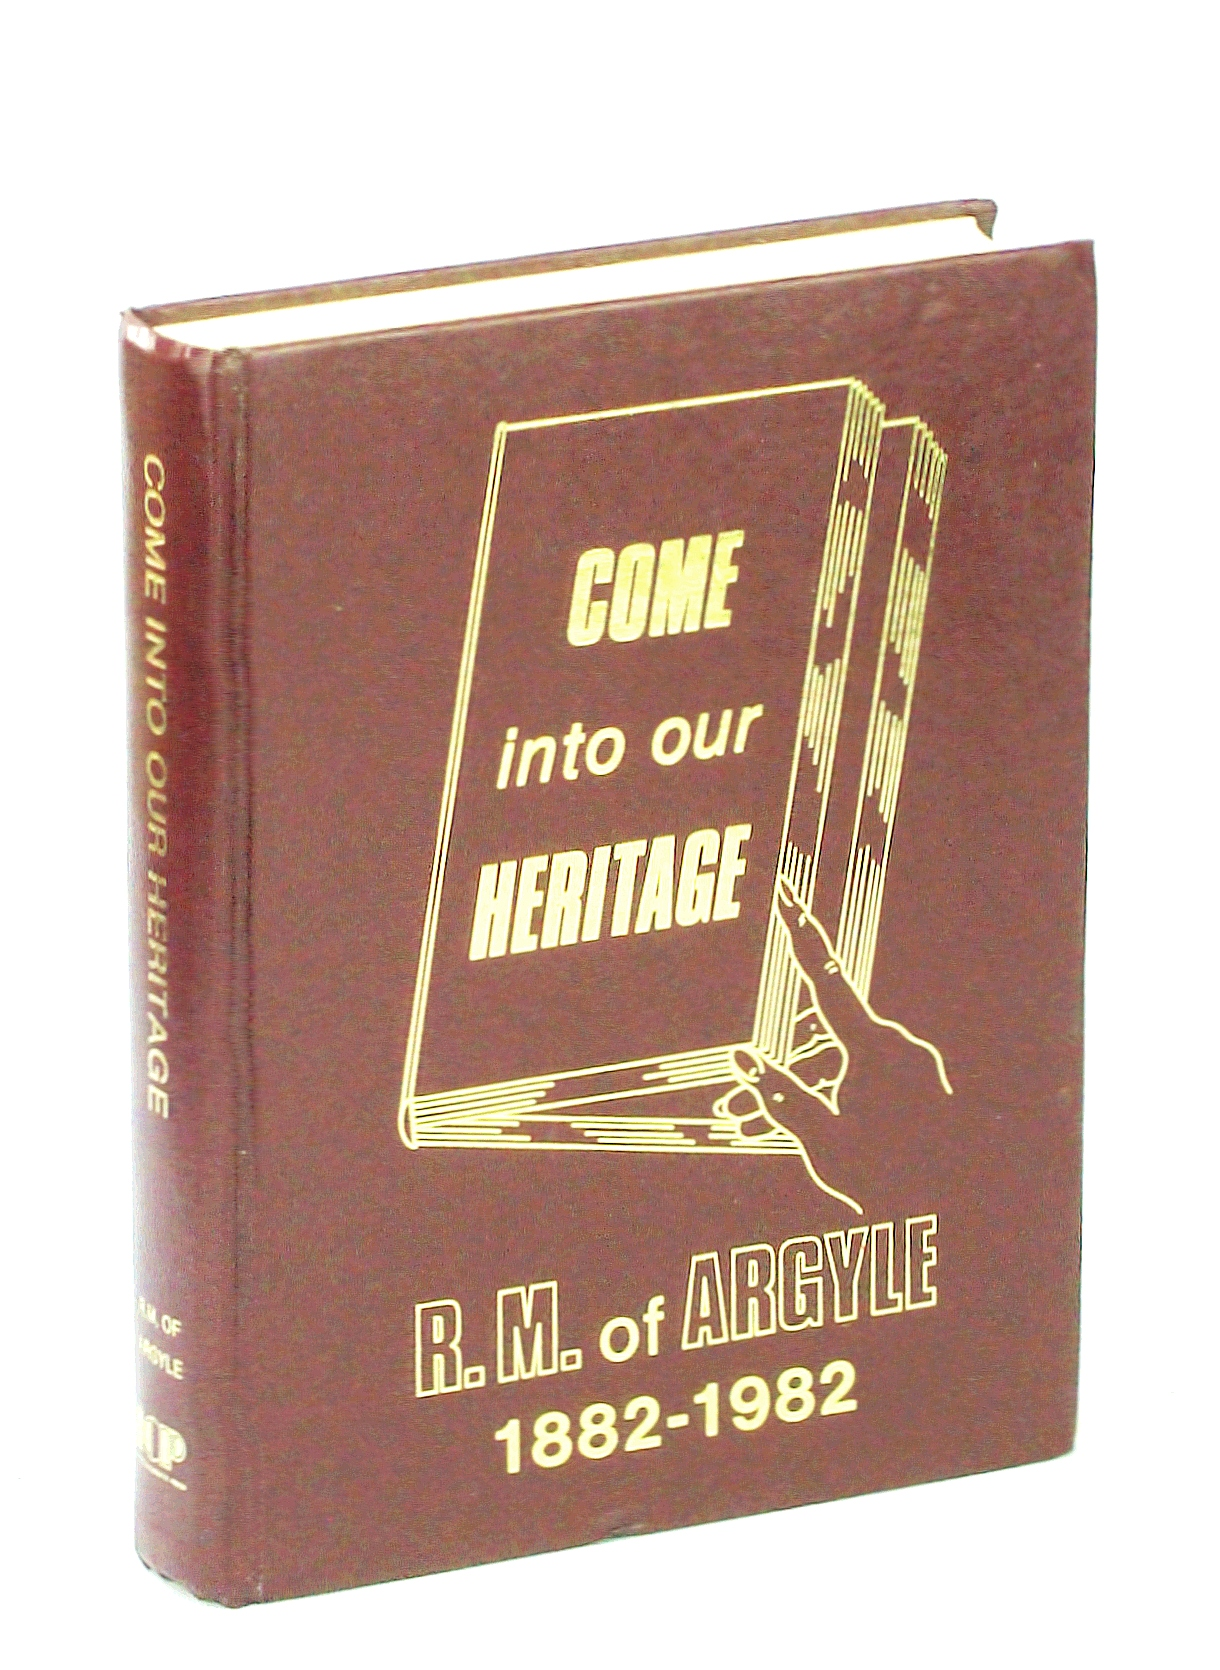 Image for Come Into Our Heritage, R.M. [Rural Municipality] of Argyle [Manitoba] 1882-1982